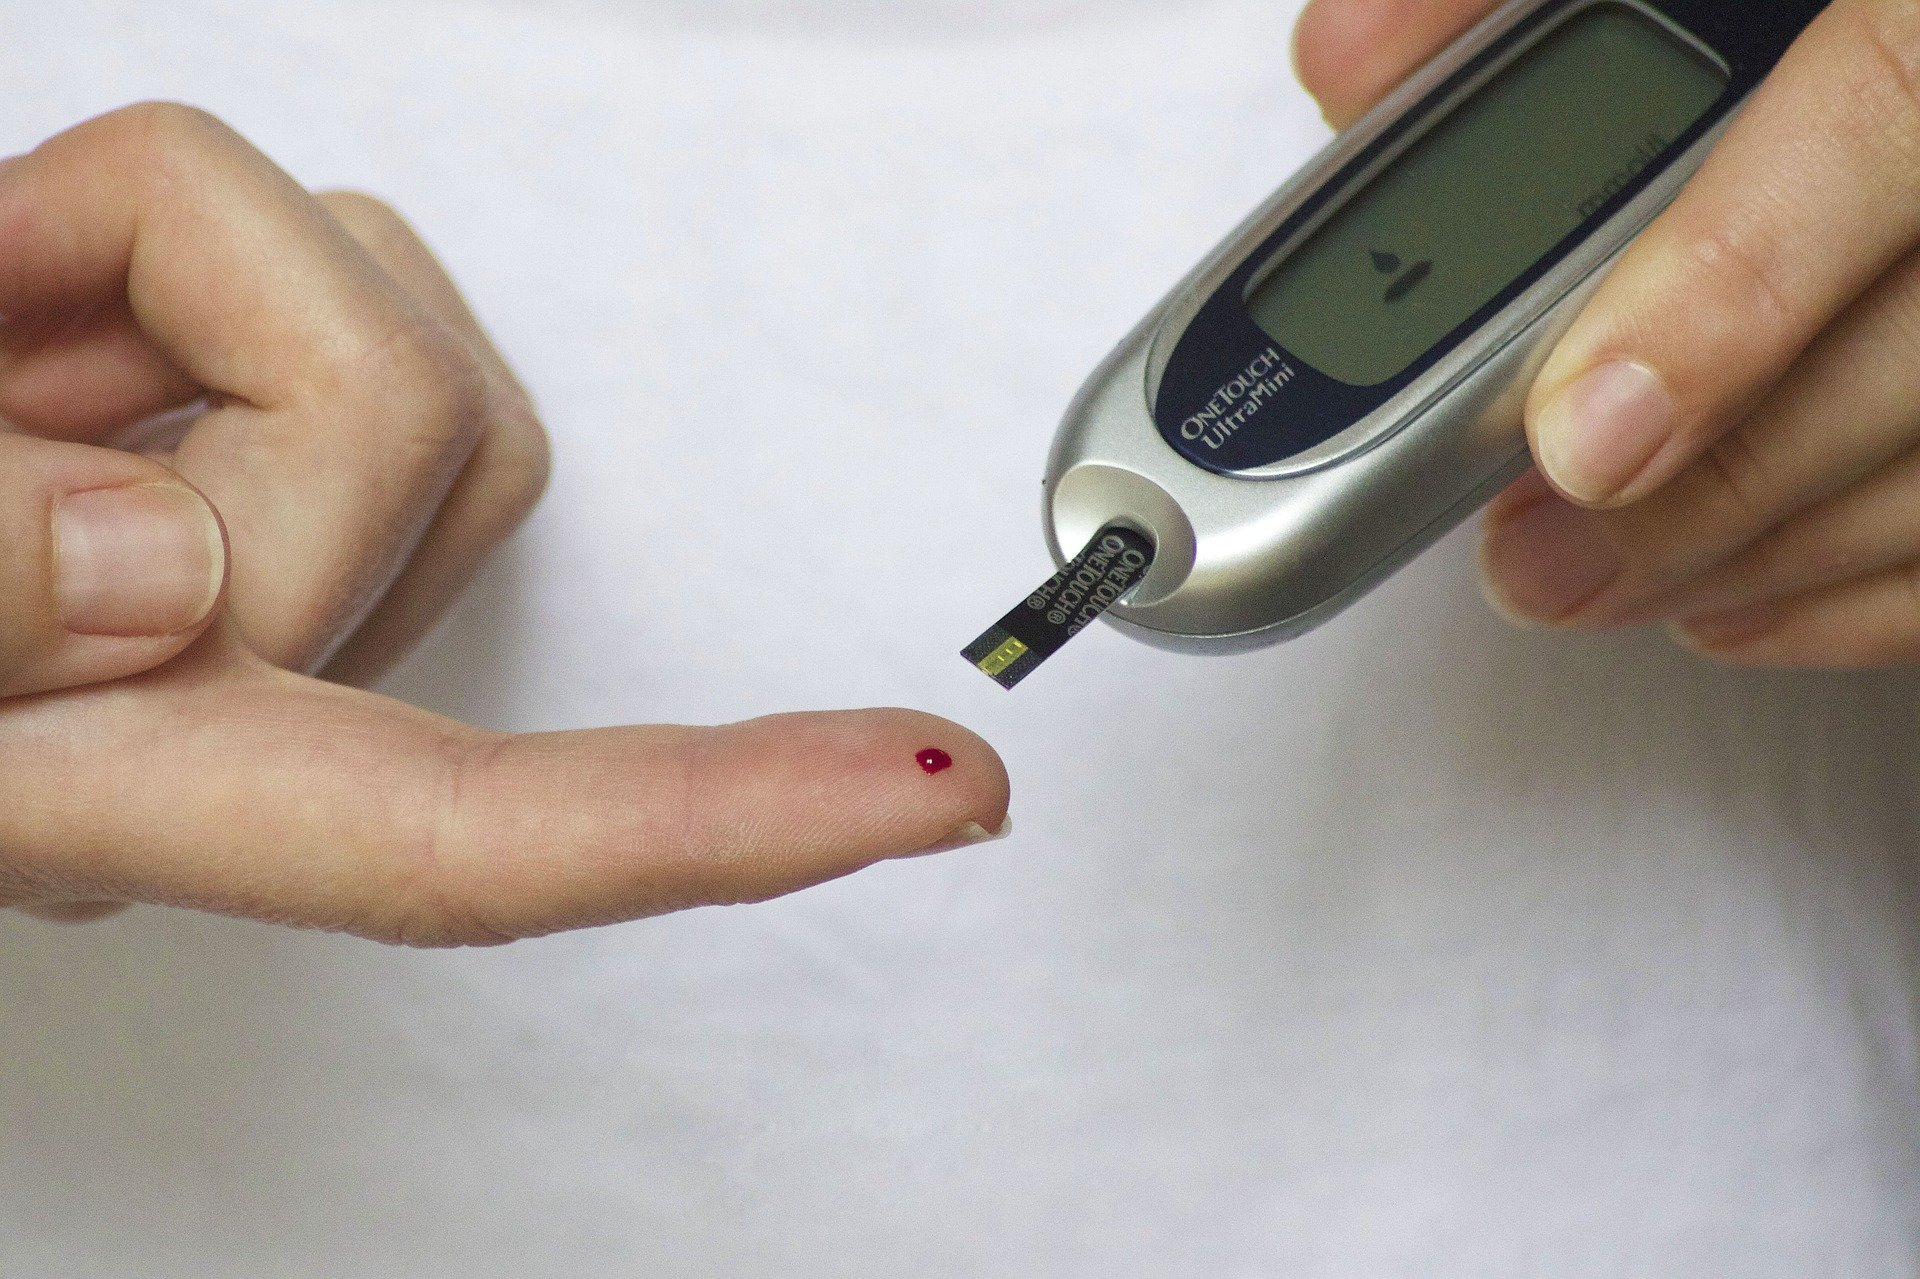 Association of area deprivation and regional disparities in the treatment of T1 diabetes